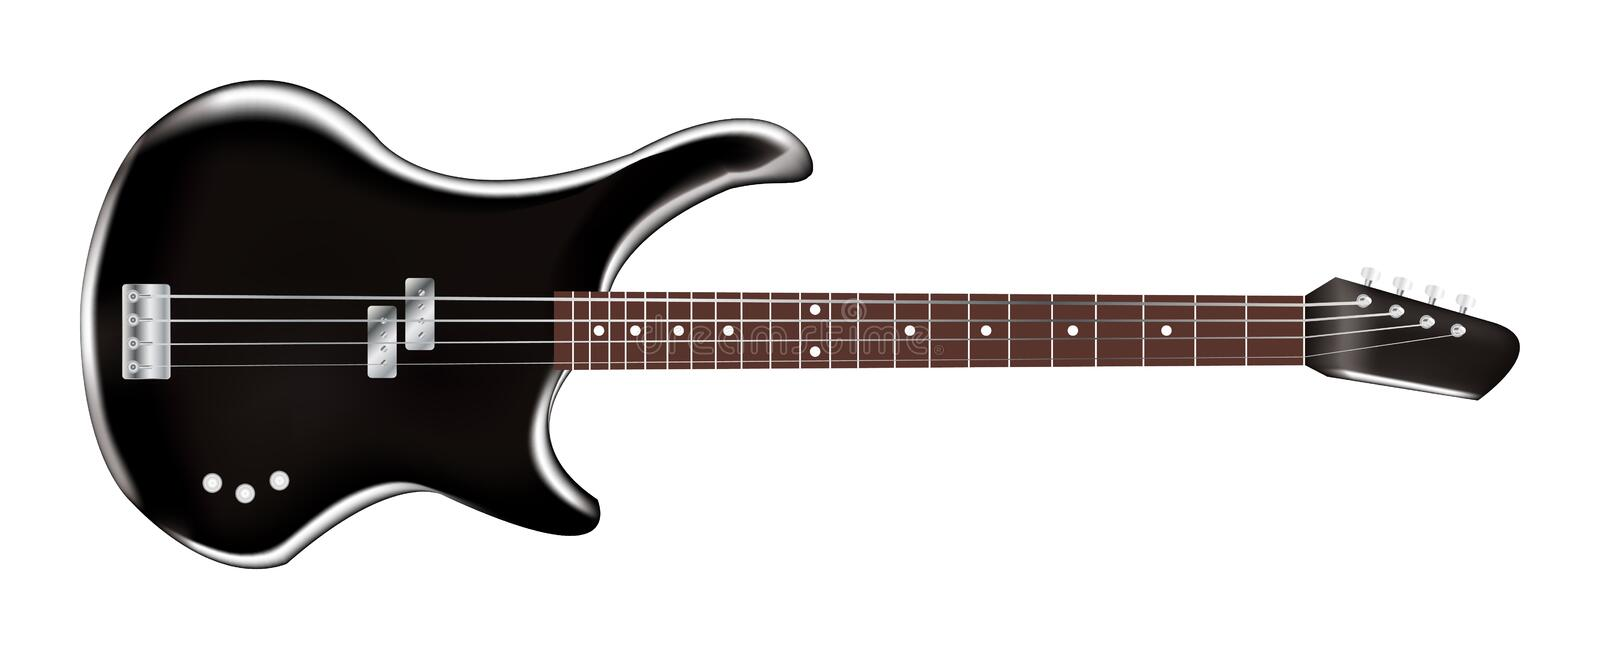 Electric guitar bass. A black electric guitar bass royalty free illustration